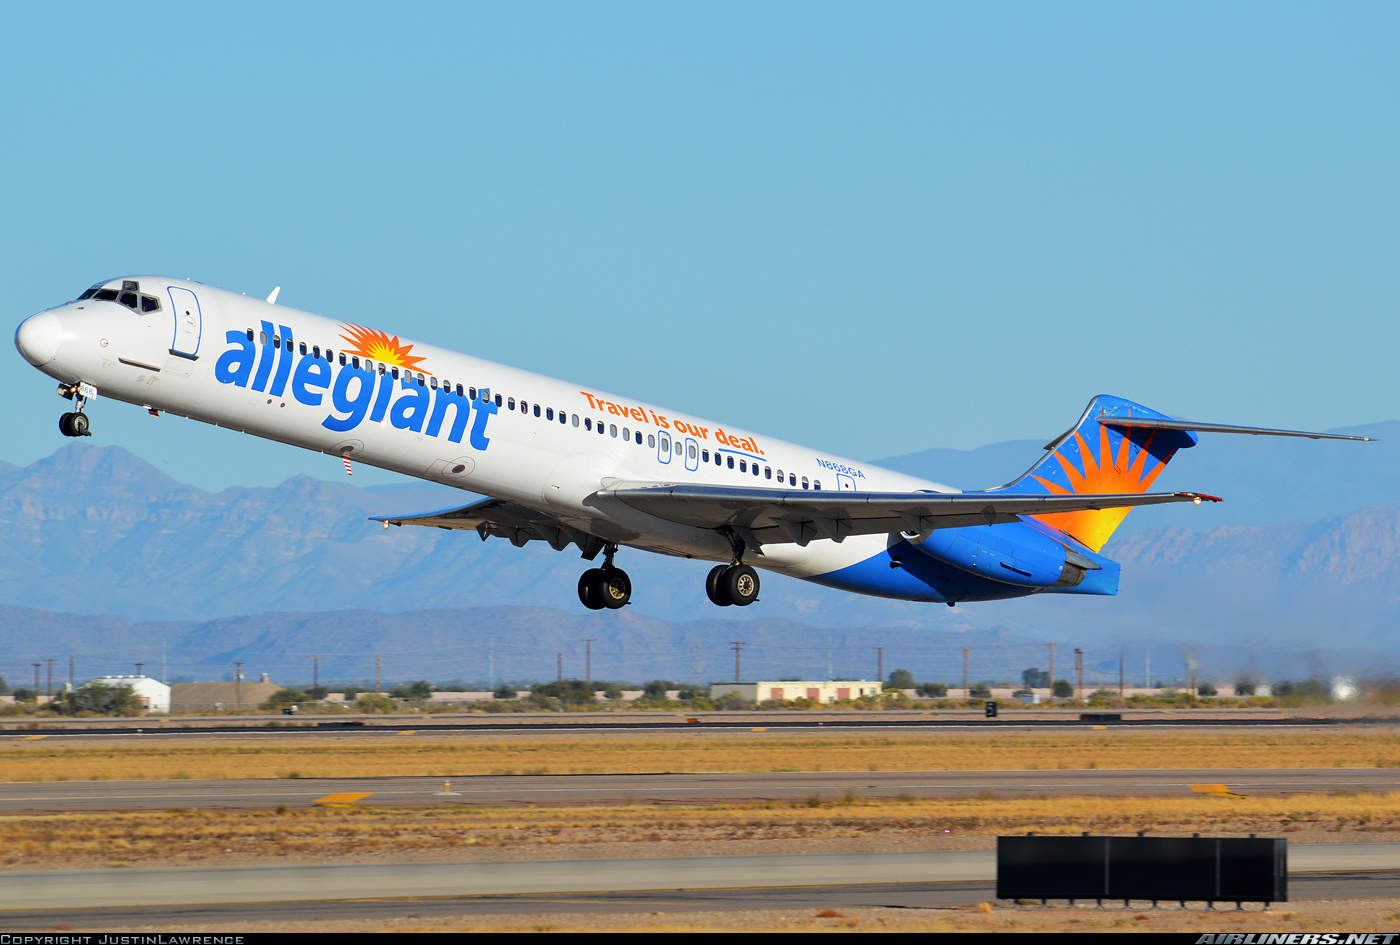 Allegiant adds seven new routes to its network